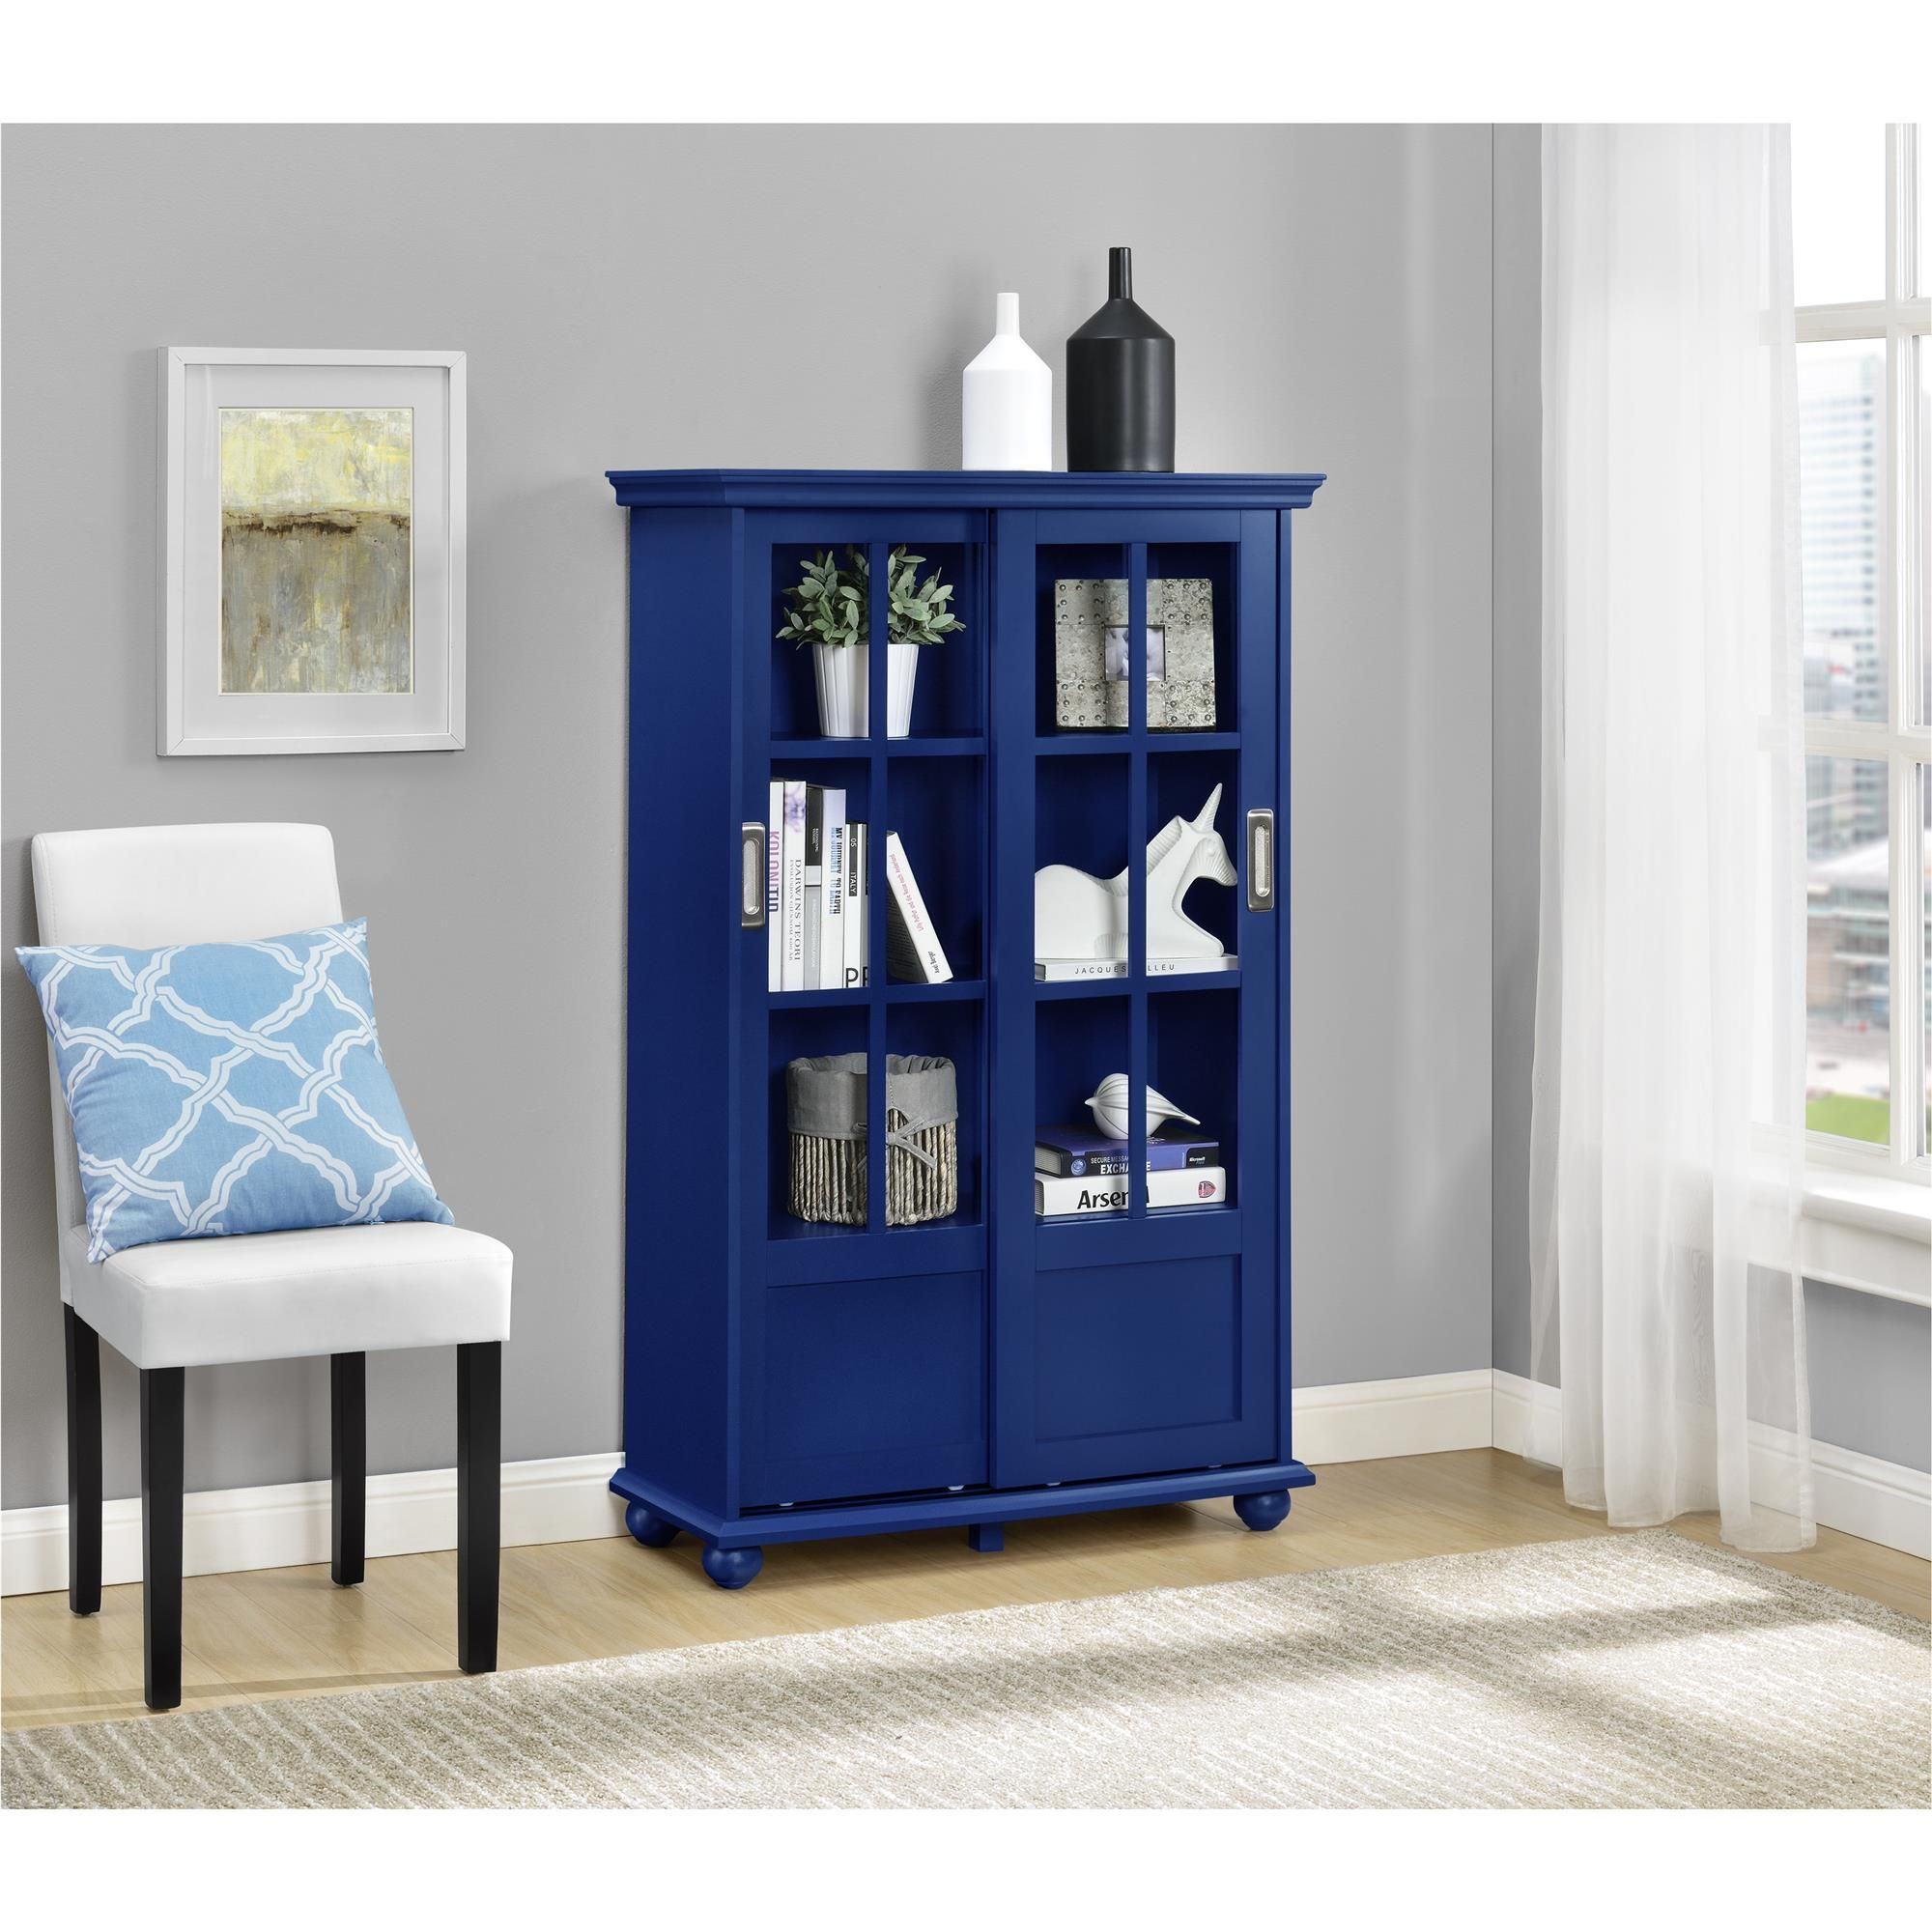 Lowest Price On Altra Furniture Aaron Lane Bookcase With